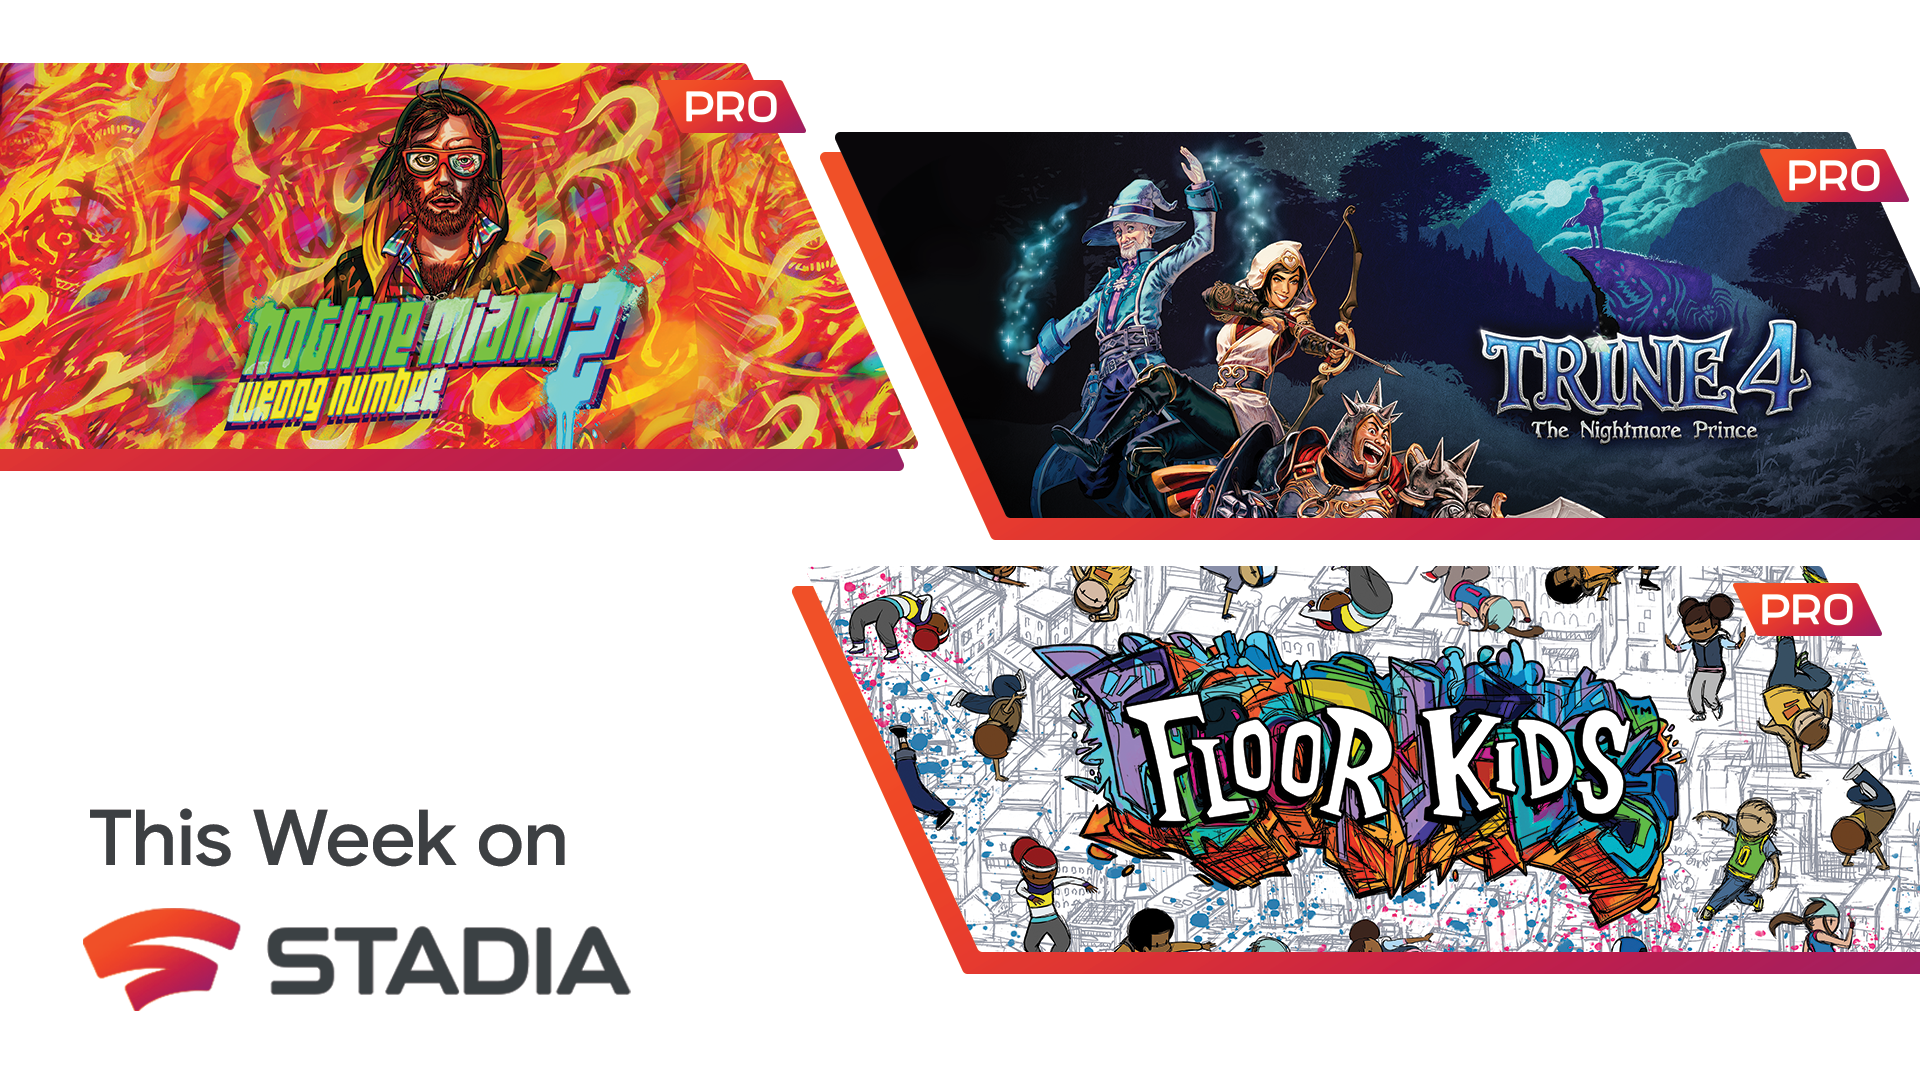 Your Stadia Pro games for May include Trine 4, Hotline Miami 2, and Floor Kids